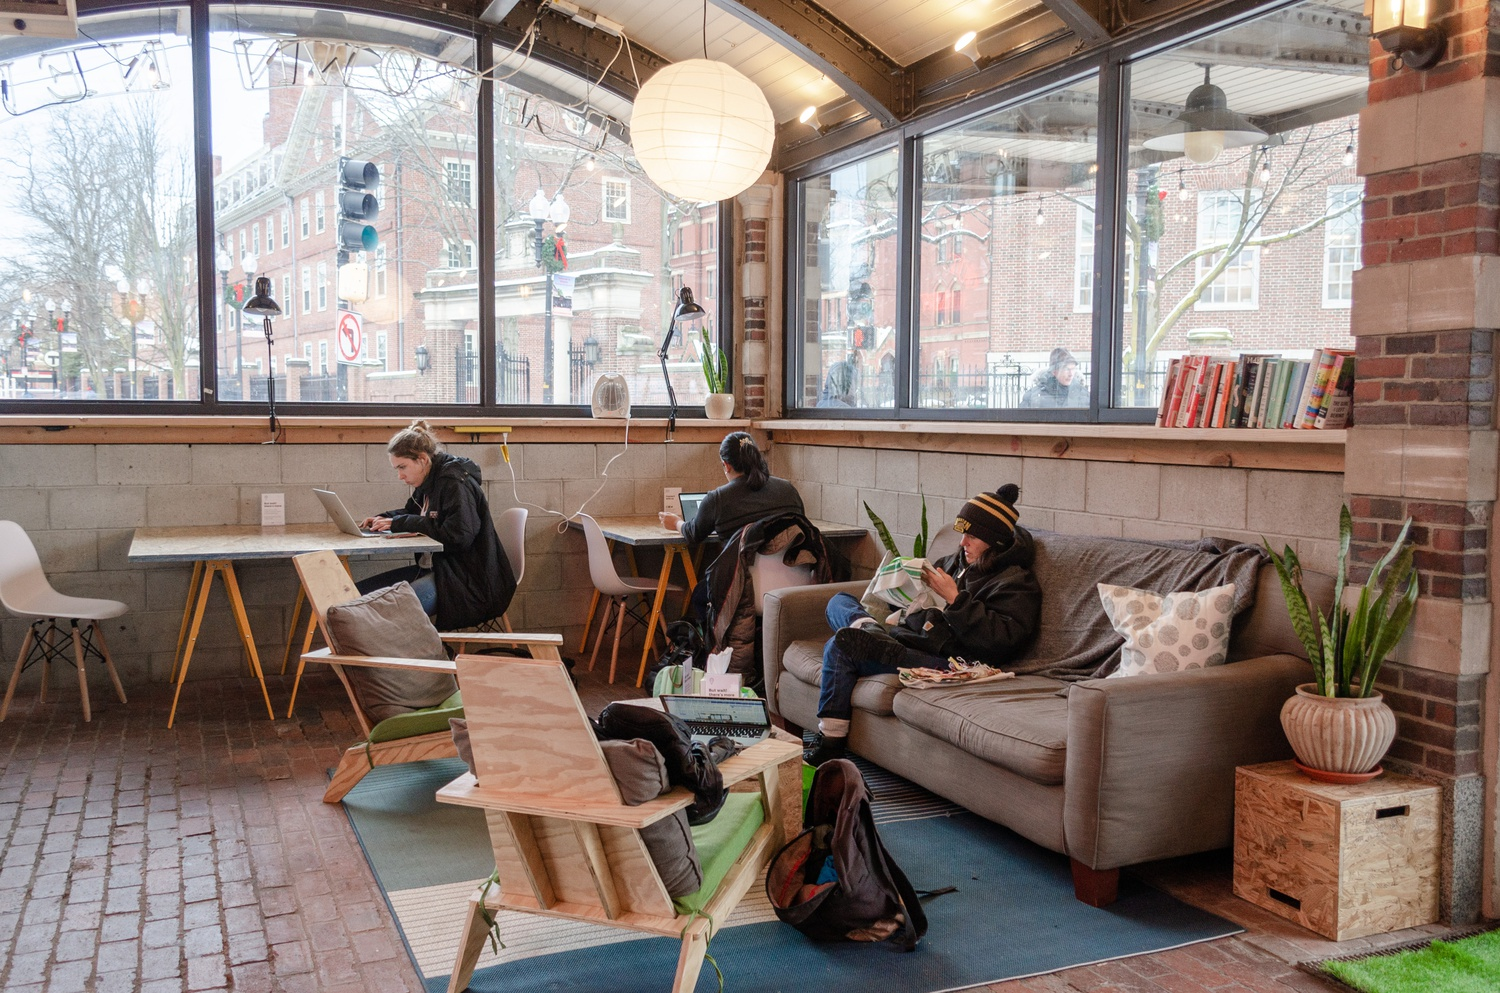 Between 100 and 200 guests enter CultureHouse's Harvard Square location each day.